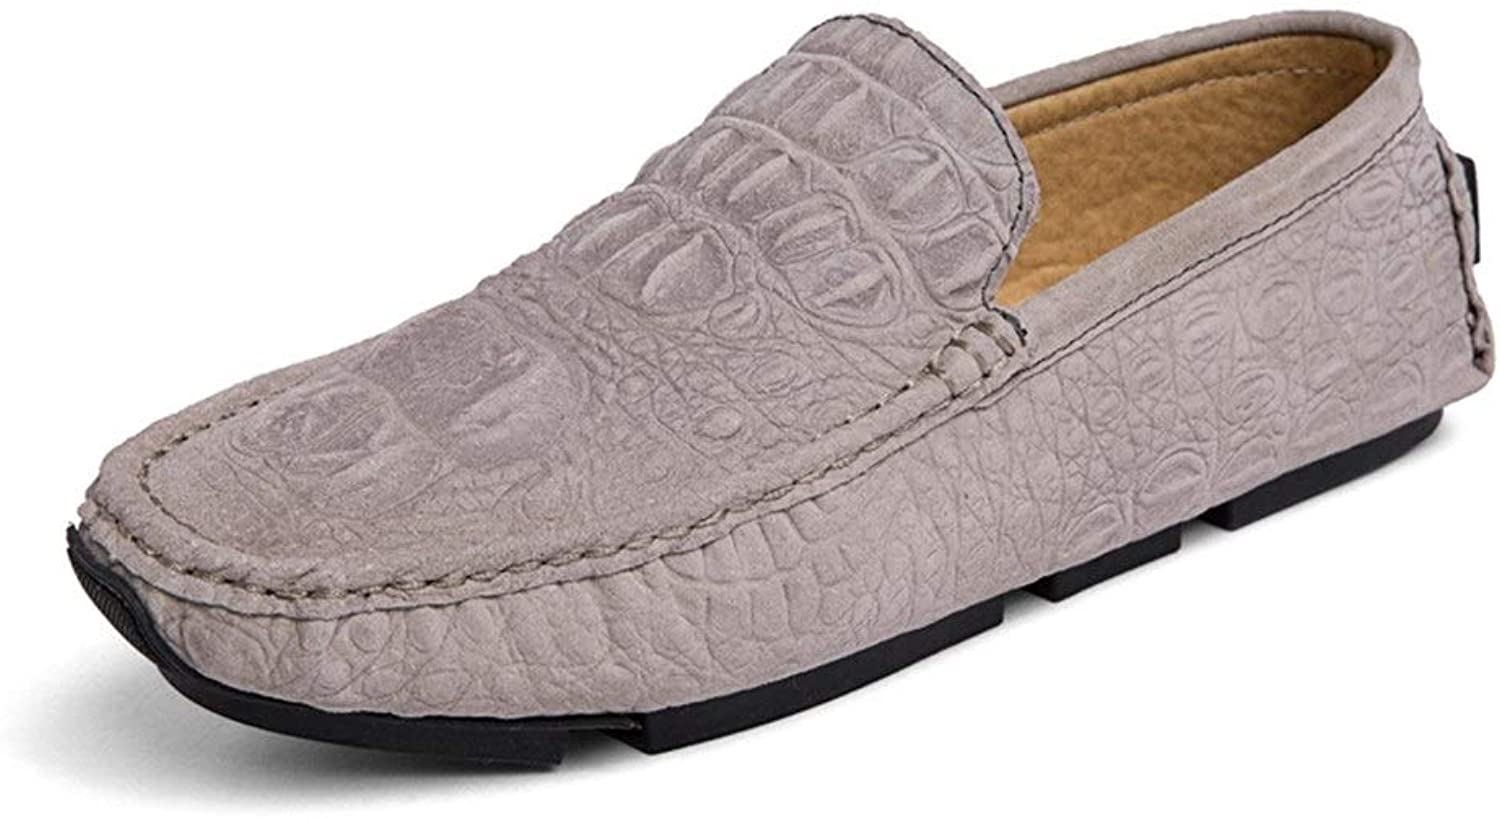 Fashion Embossed Penny Loafers for Men Genuine Leather Lightweight Breathable Business Dress Wedding Casual shoes Anti-slip Flat Slip-on Round Toe Cricket shoes (color   Khaki, Size   9 UK)